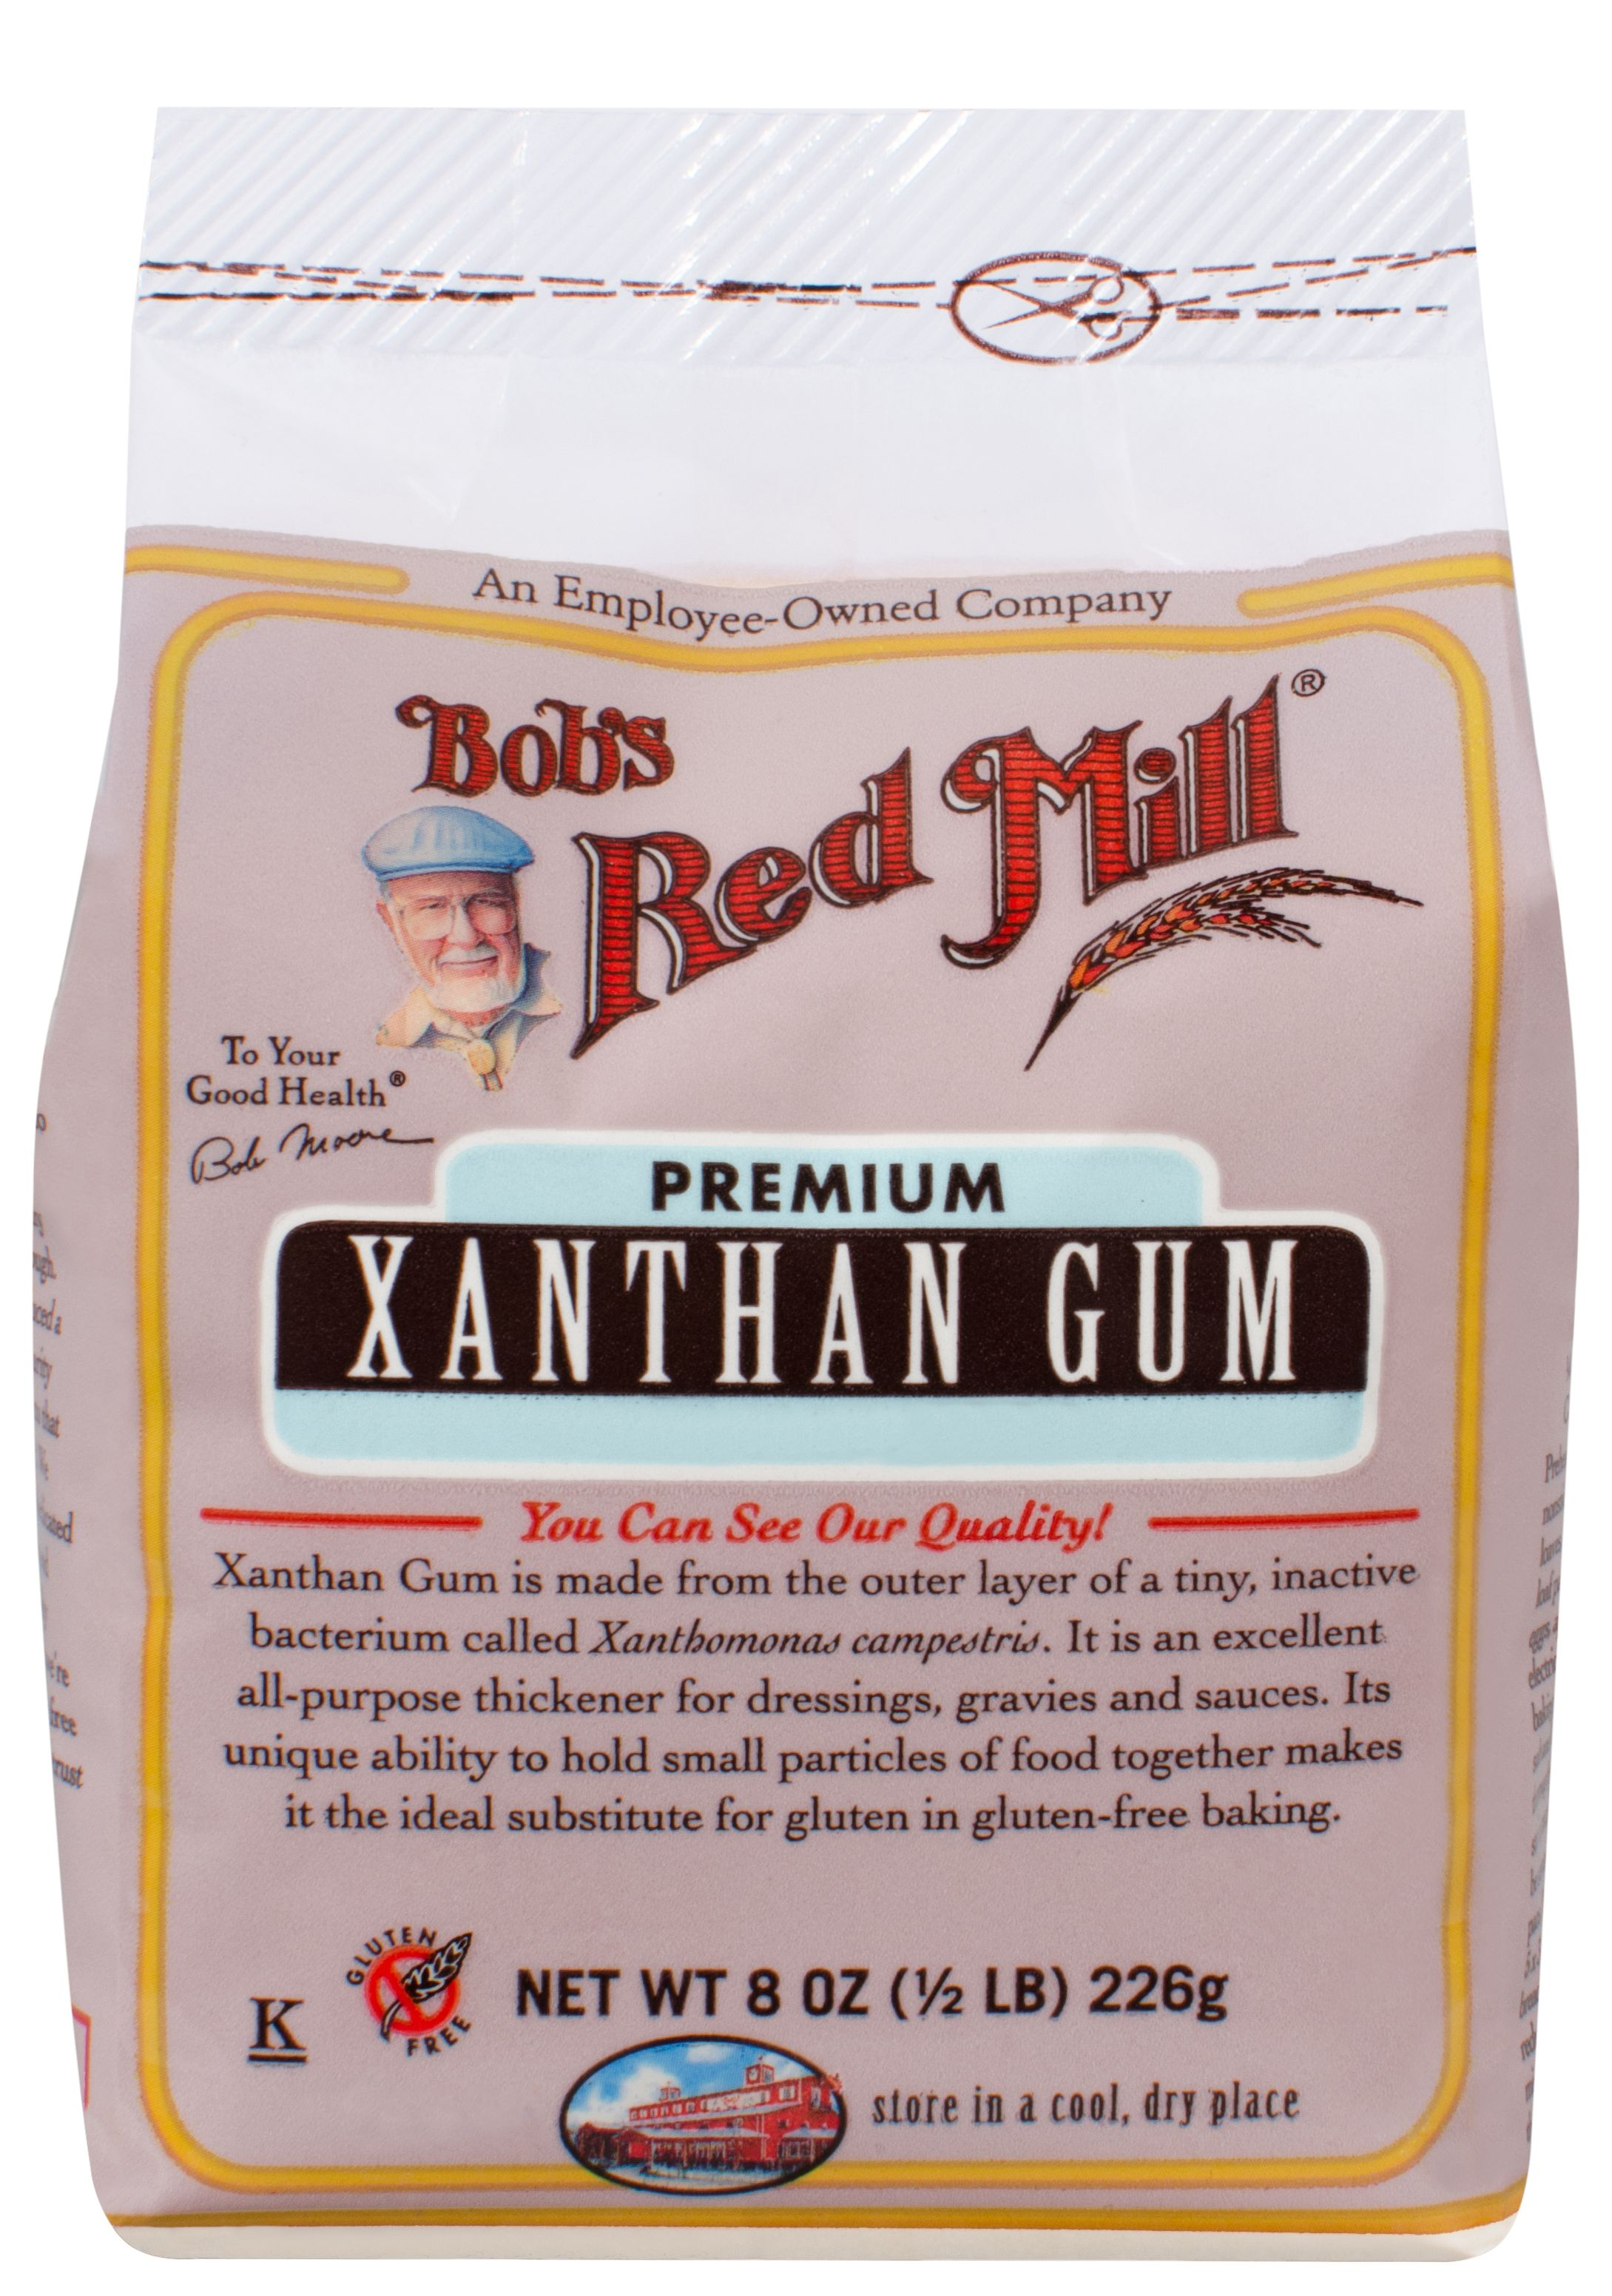 How to Clean up Xanthan Gum | Bob's Red Mill